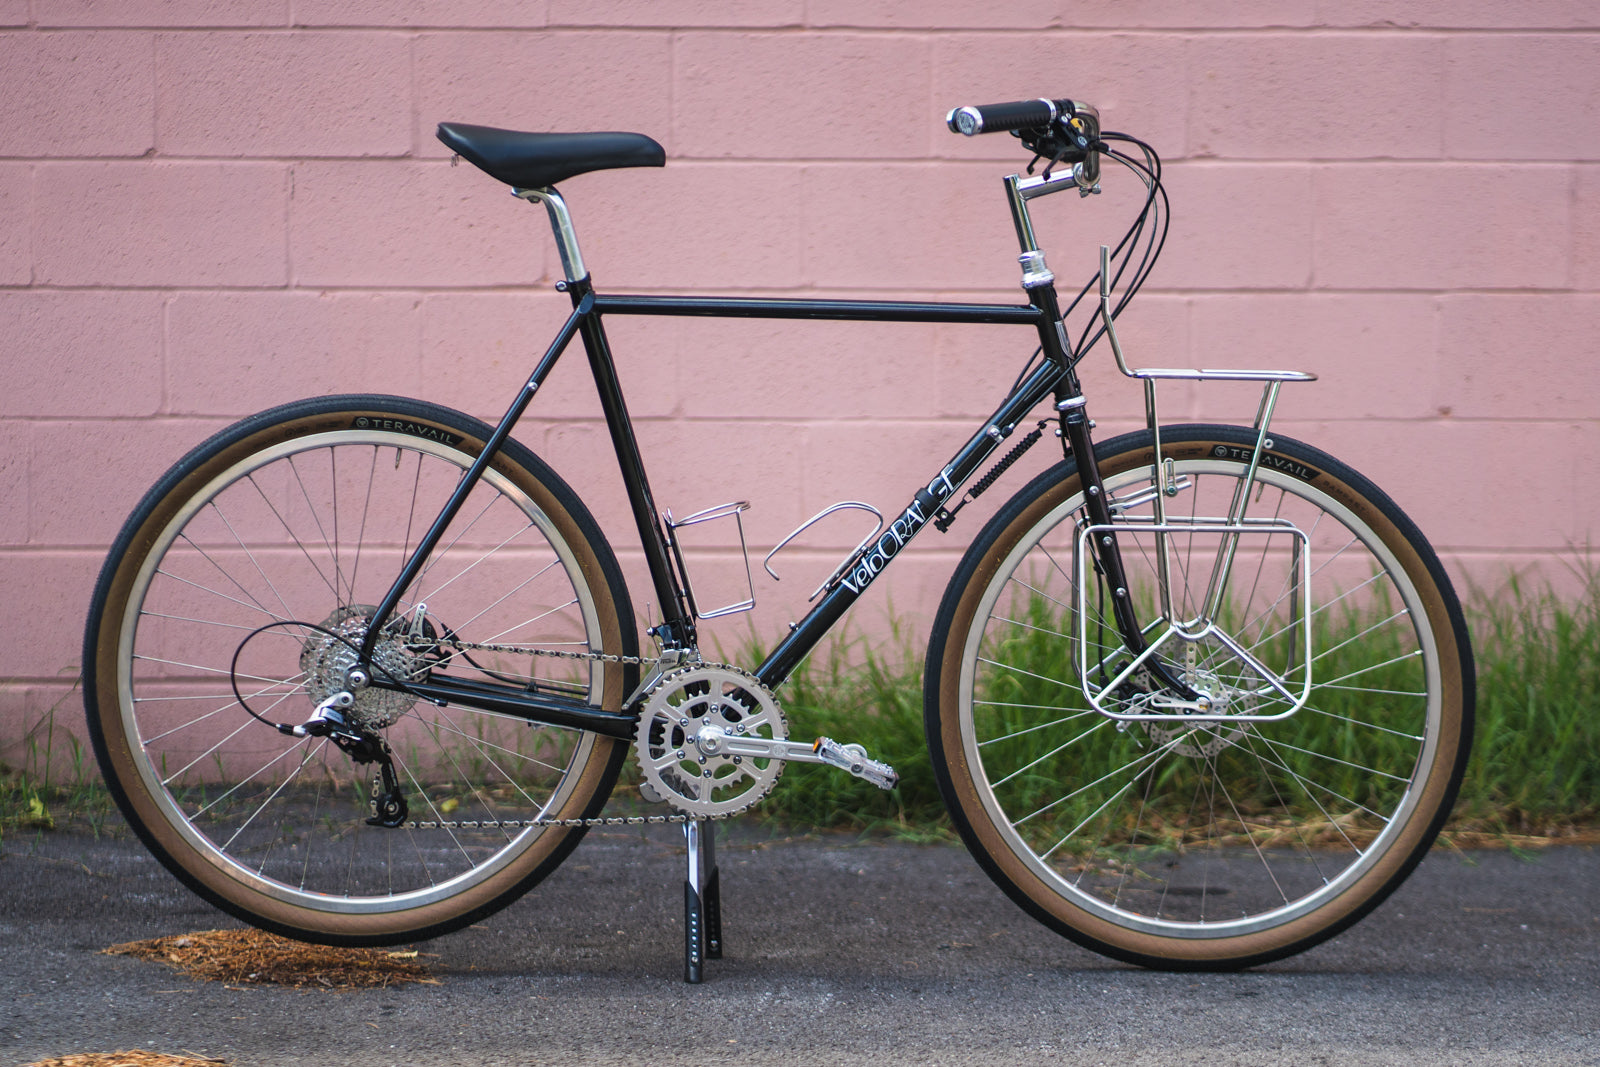 Velo Orange Polyvalent with Klunker Handlebars and Campeur Front Rack